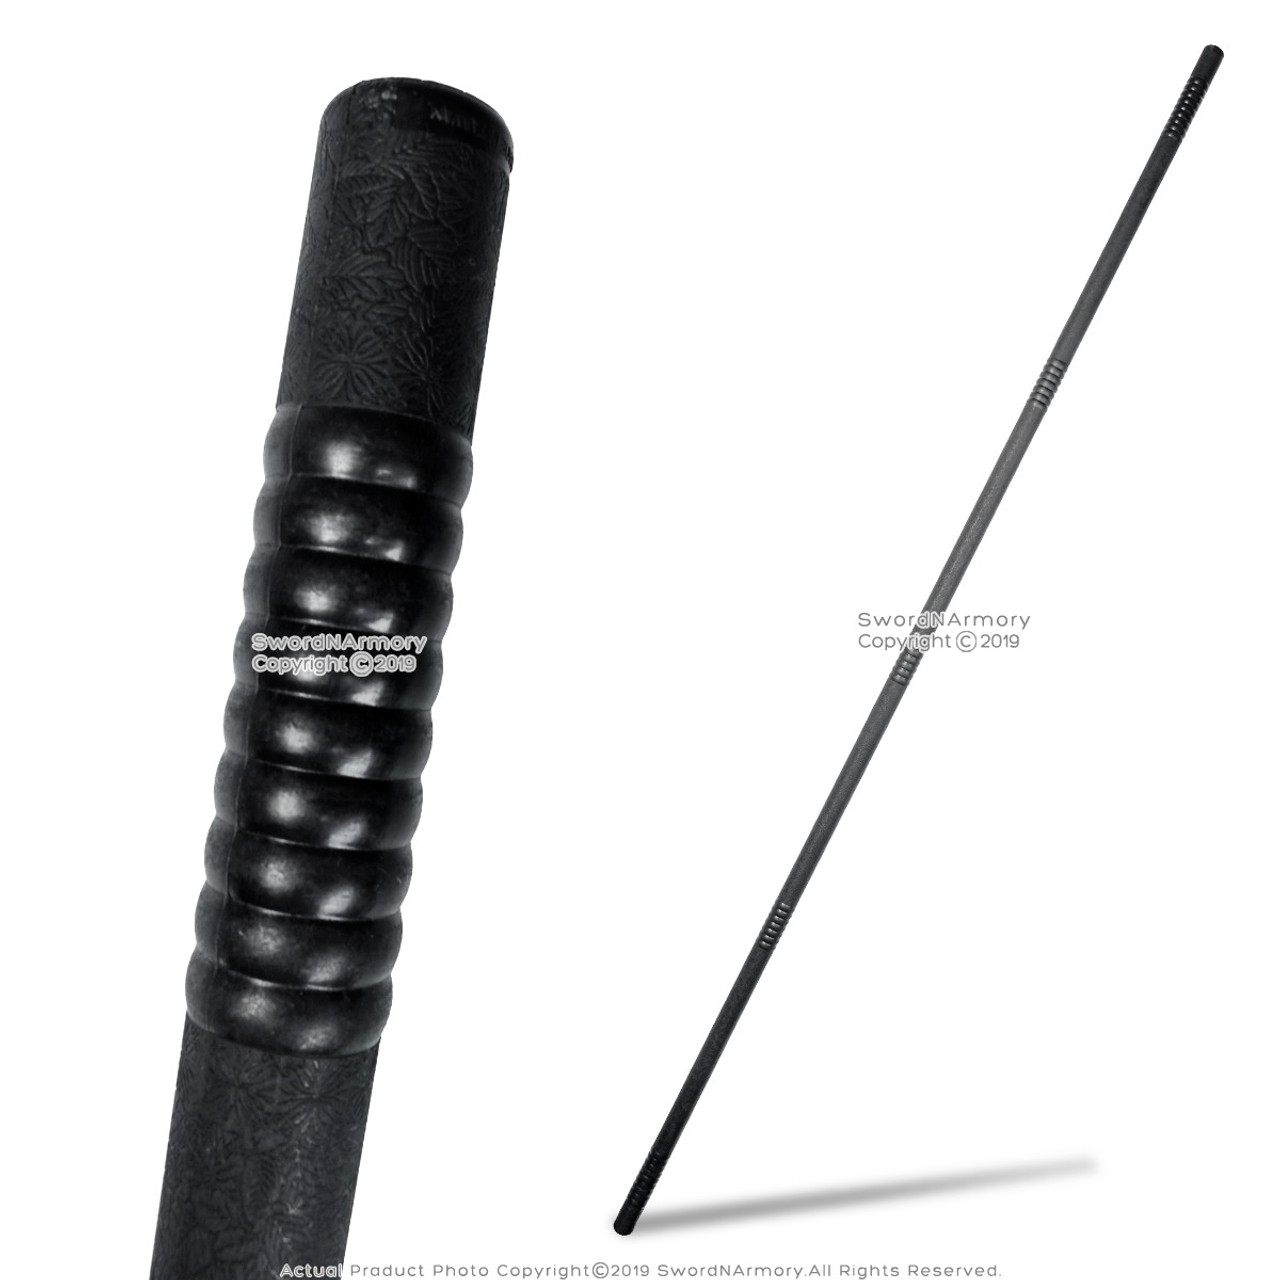 Black Traditional Hardwood Bo Staff for Martial Arts Karate Kali Stick 6 ft//72/""